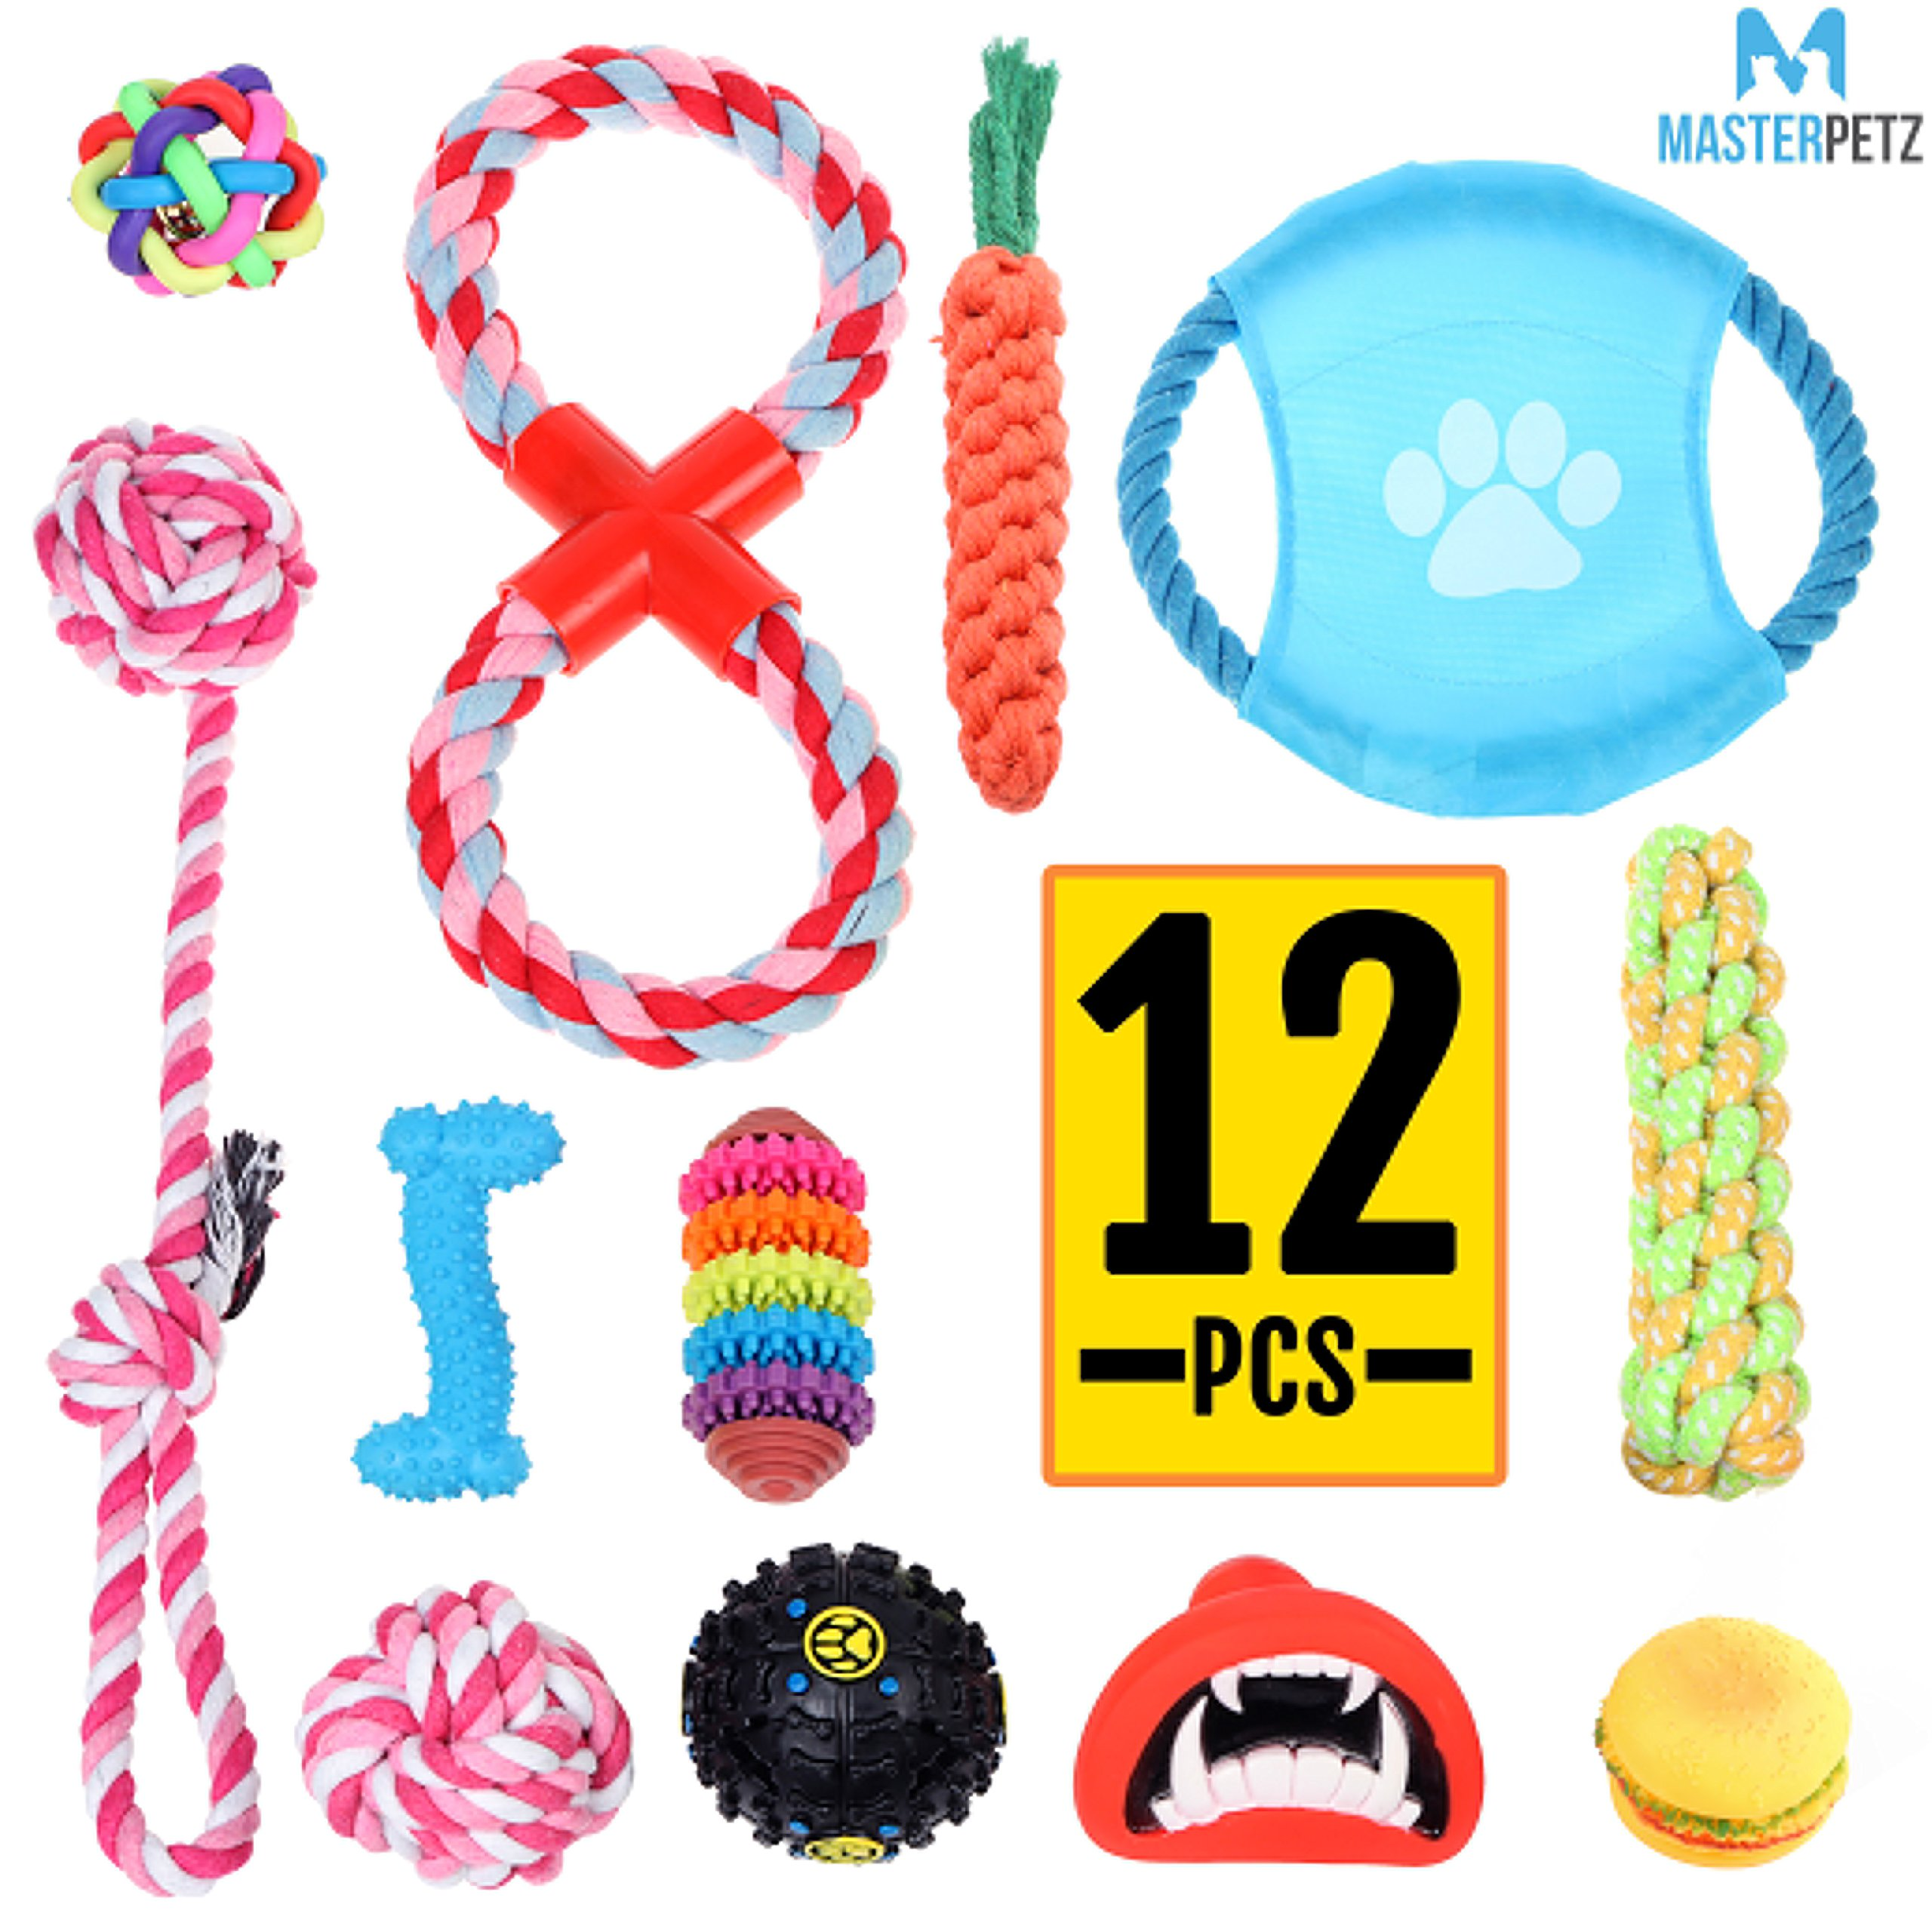 MASTERPETZ Set of 12 Pcs Assorted Dog Toy Set Ball Rope and Chew Squeaky Toys for Small Medium Dog, Excellently Clean Teeth and Massage Gum, Educational Dog Toy to Stimulate Pet Mentally Physically